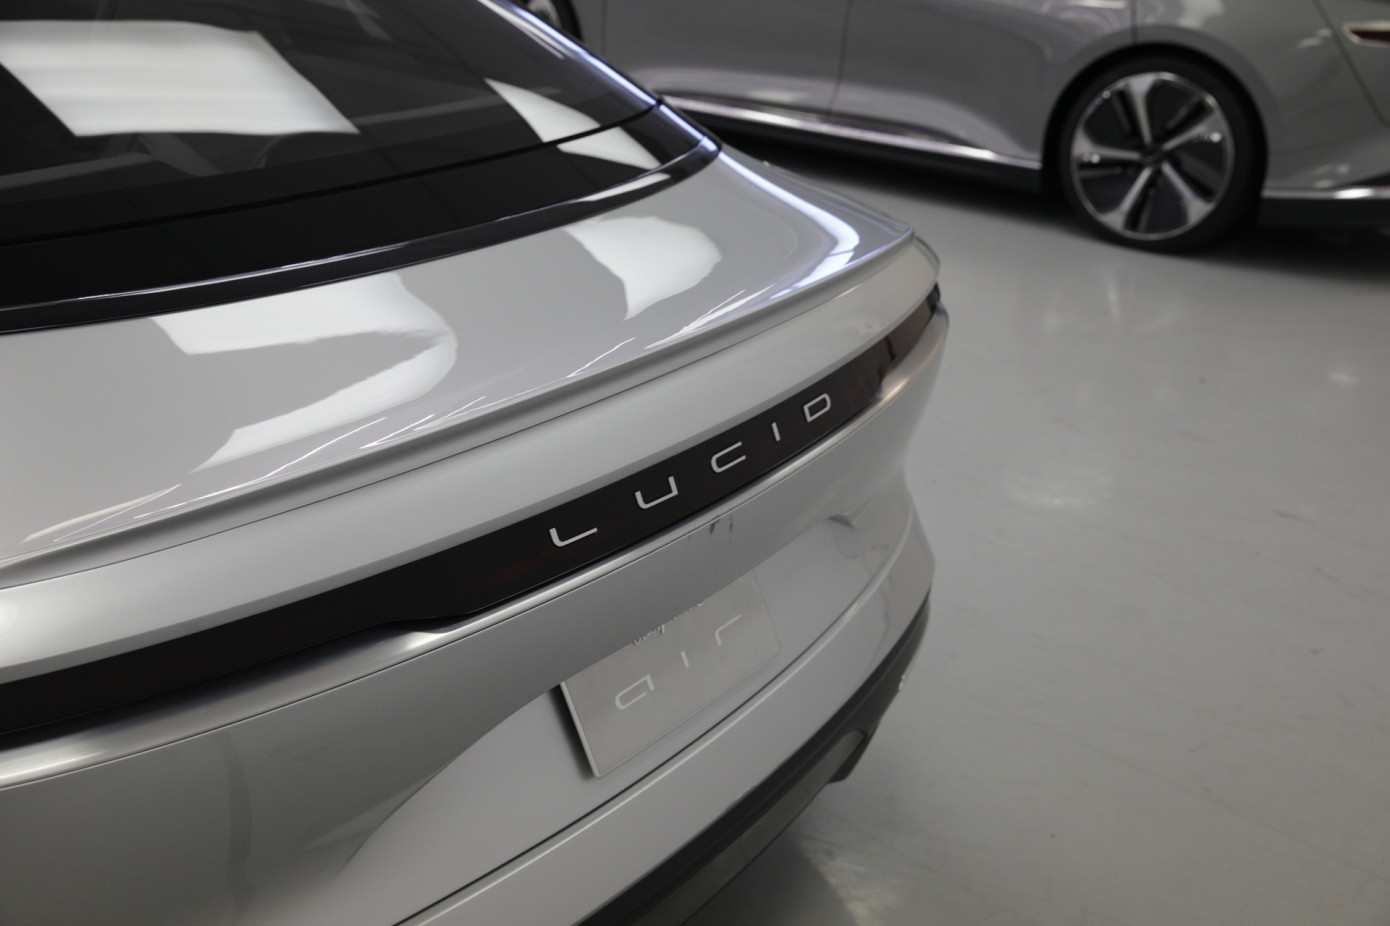 Investment for Tesla got the company Lucid Motors